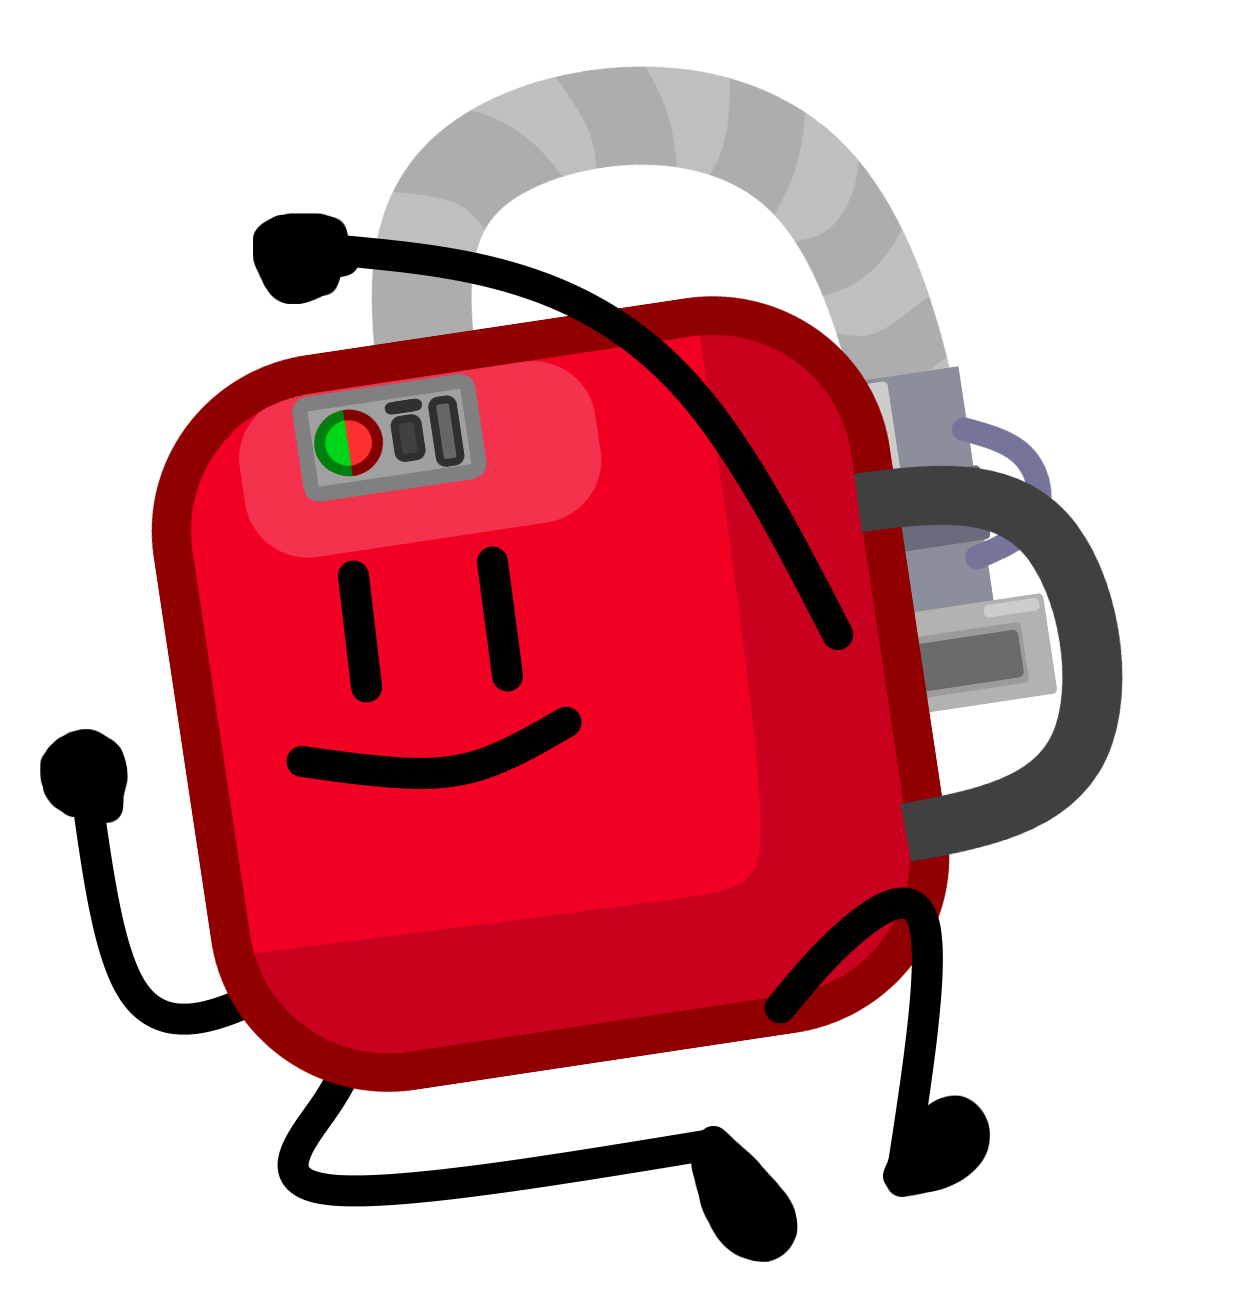 clip Toaster clipart epic. Image vacuumepose png battle.